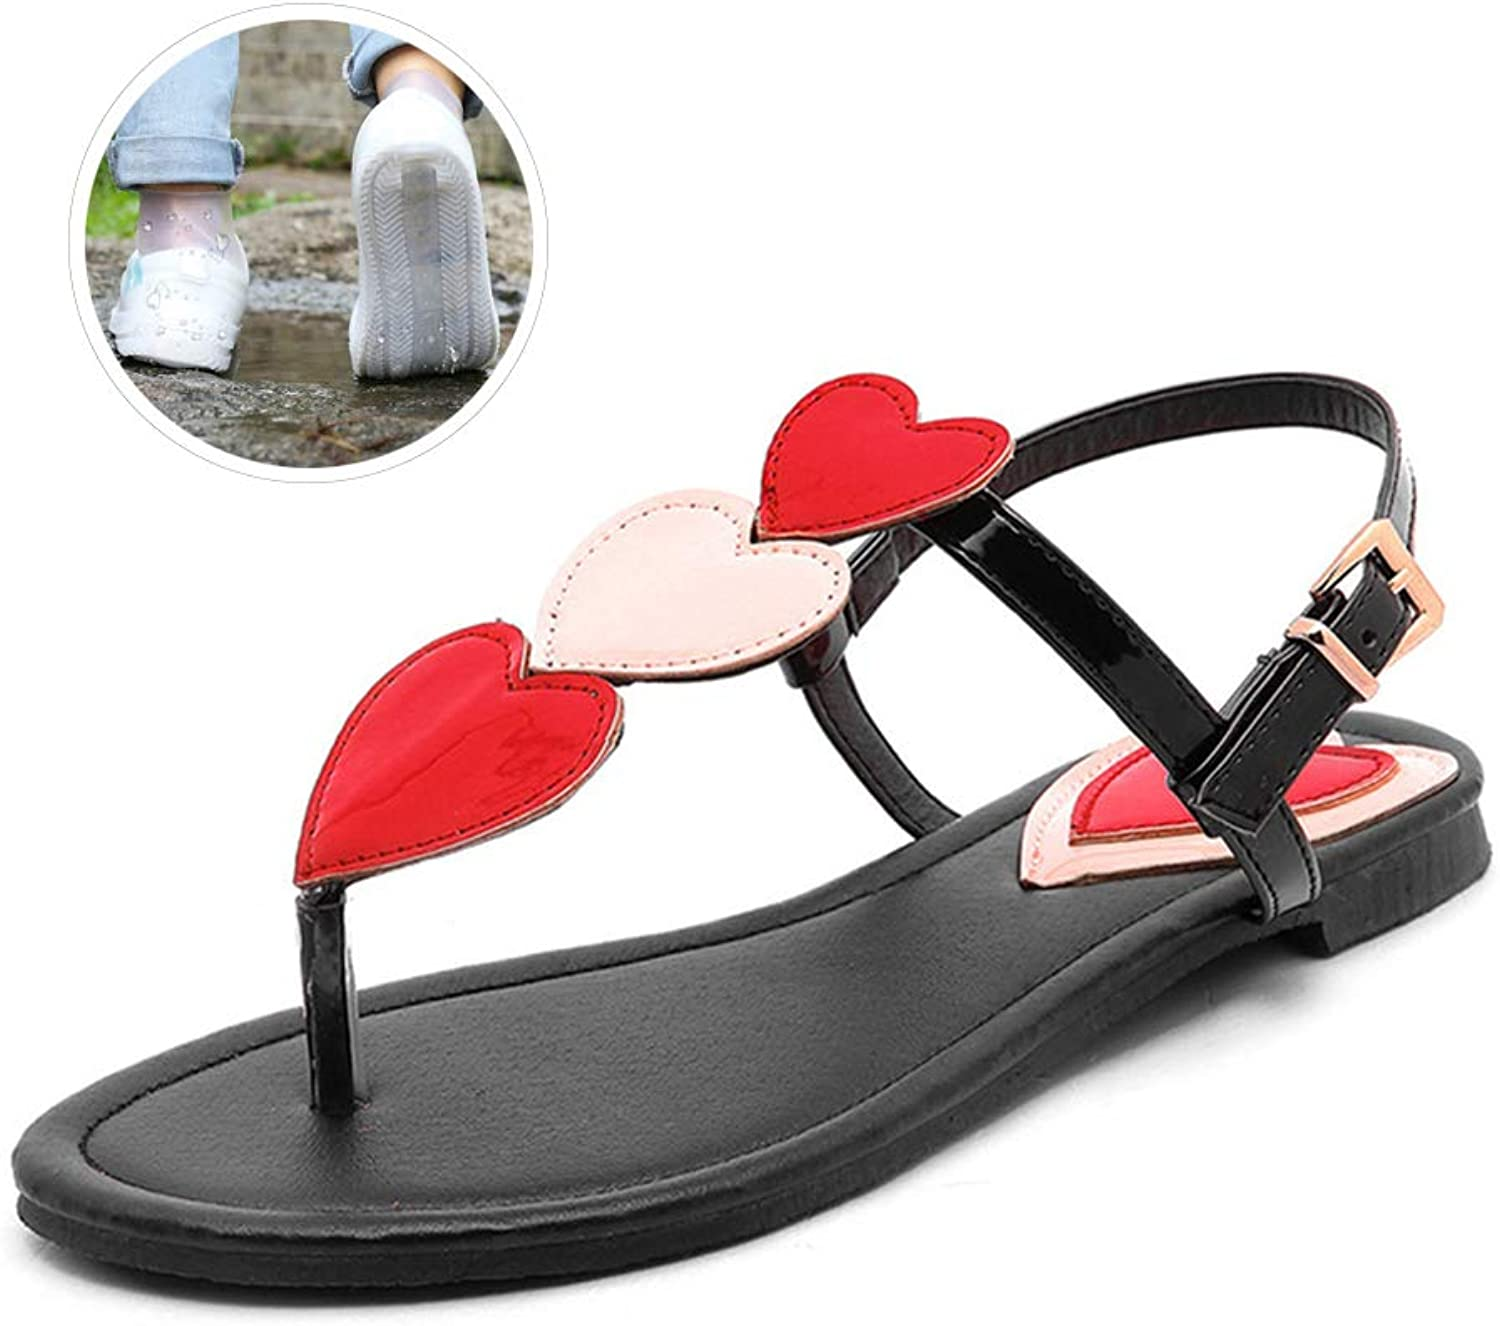 Sandals Woman Casual Comfortable, Buckle Strap Flat with Heart-Shaped Casual Sweet shoes, Flat Plus Size Sandals 35-45, with shoes Cover,Black,5.5US